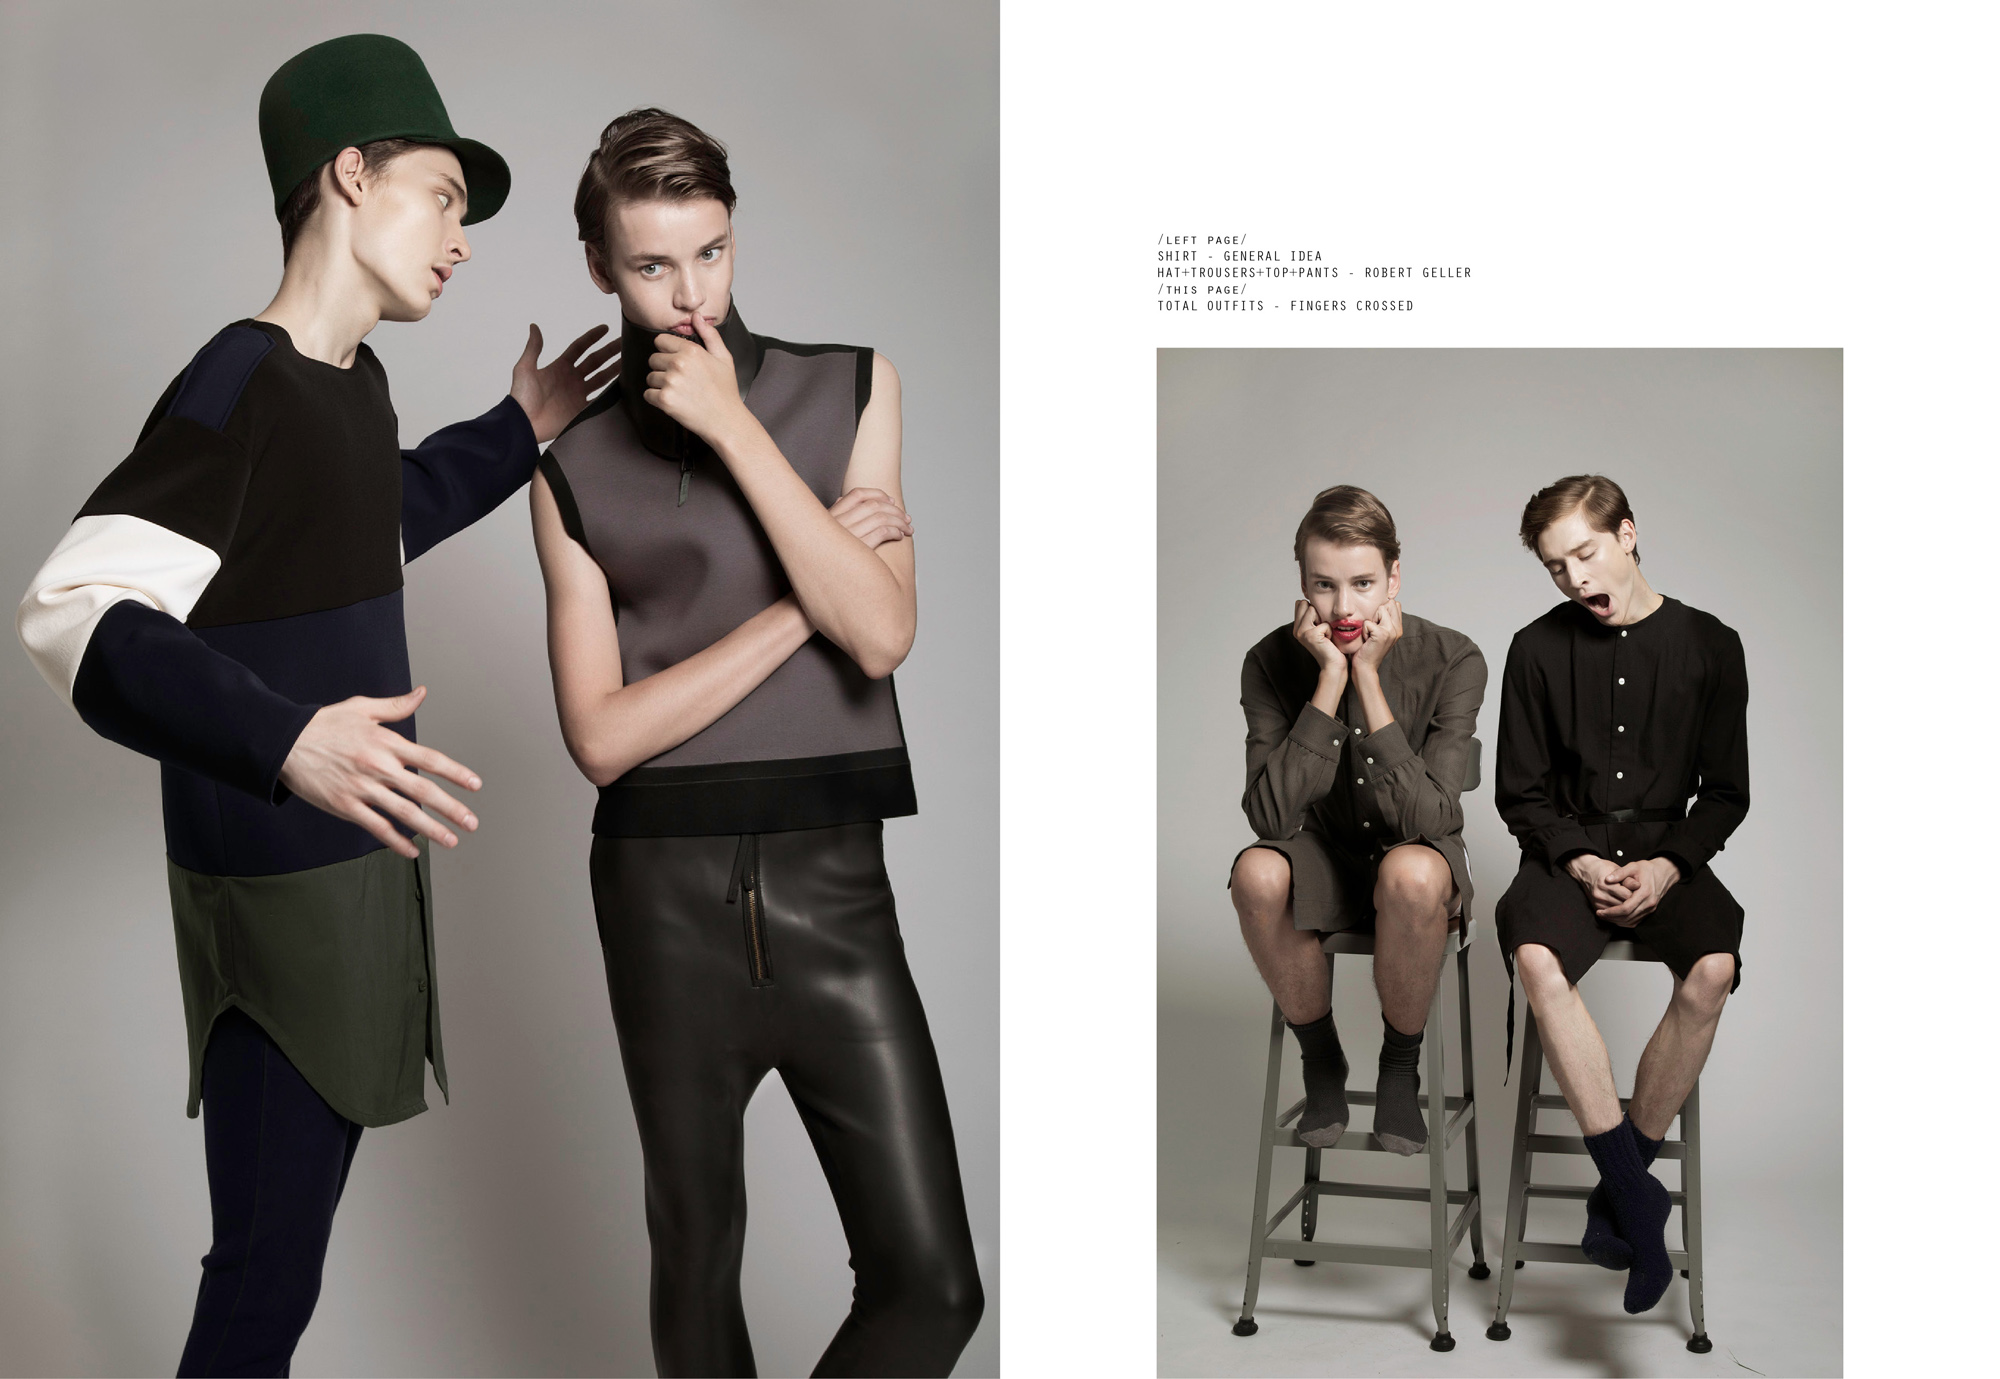 Niclas Nilsson and Noah Duran by Wish Thanasarakhan for CHASSEUR MAGAZINE issue #9